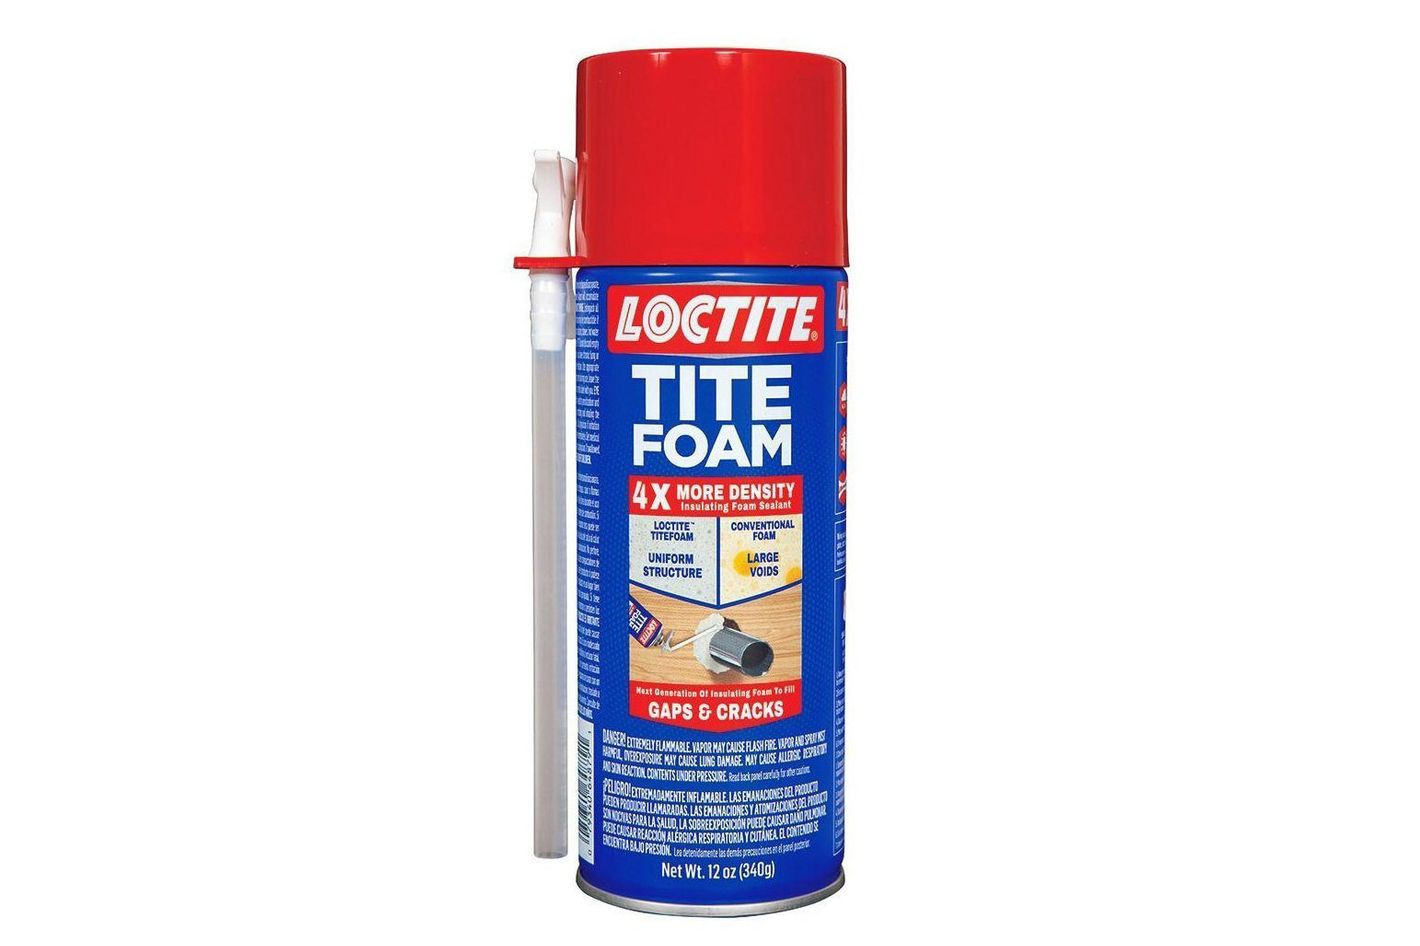 Henkel-Loctite 1988753 12 oz. Tite Foam Insulating Foam Sealant, White